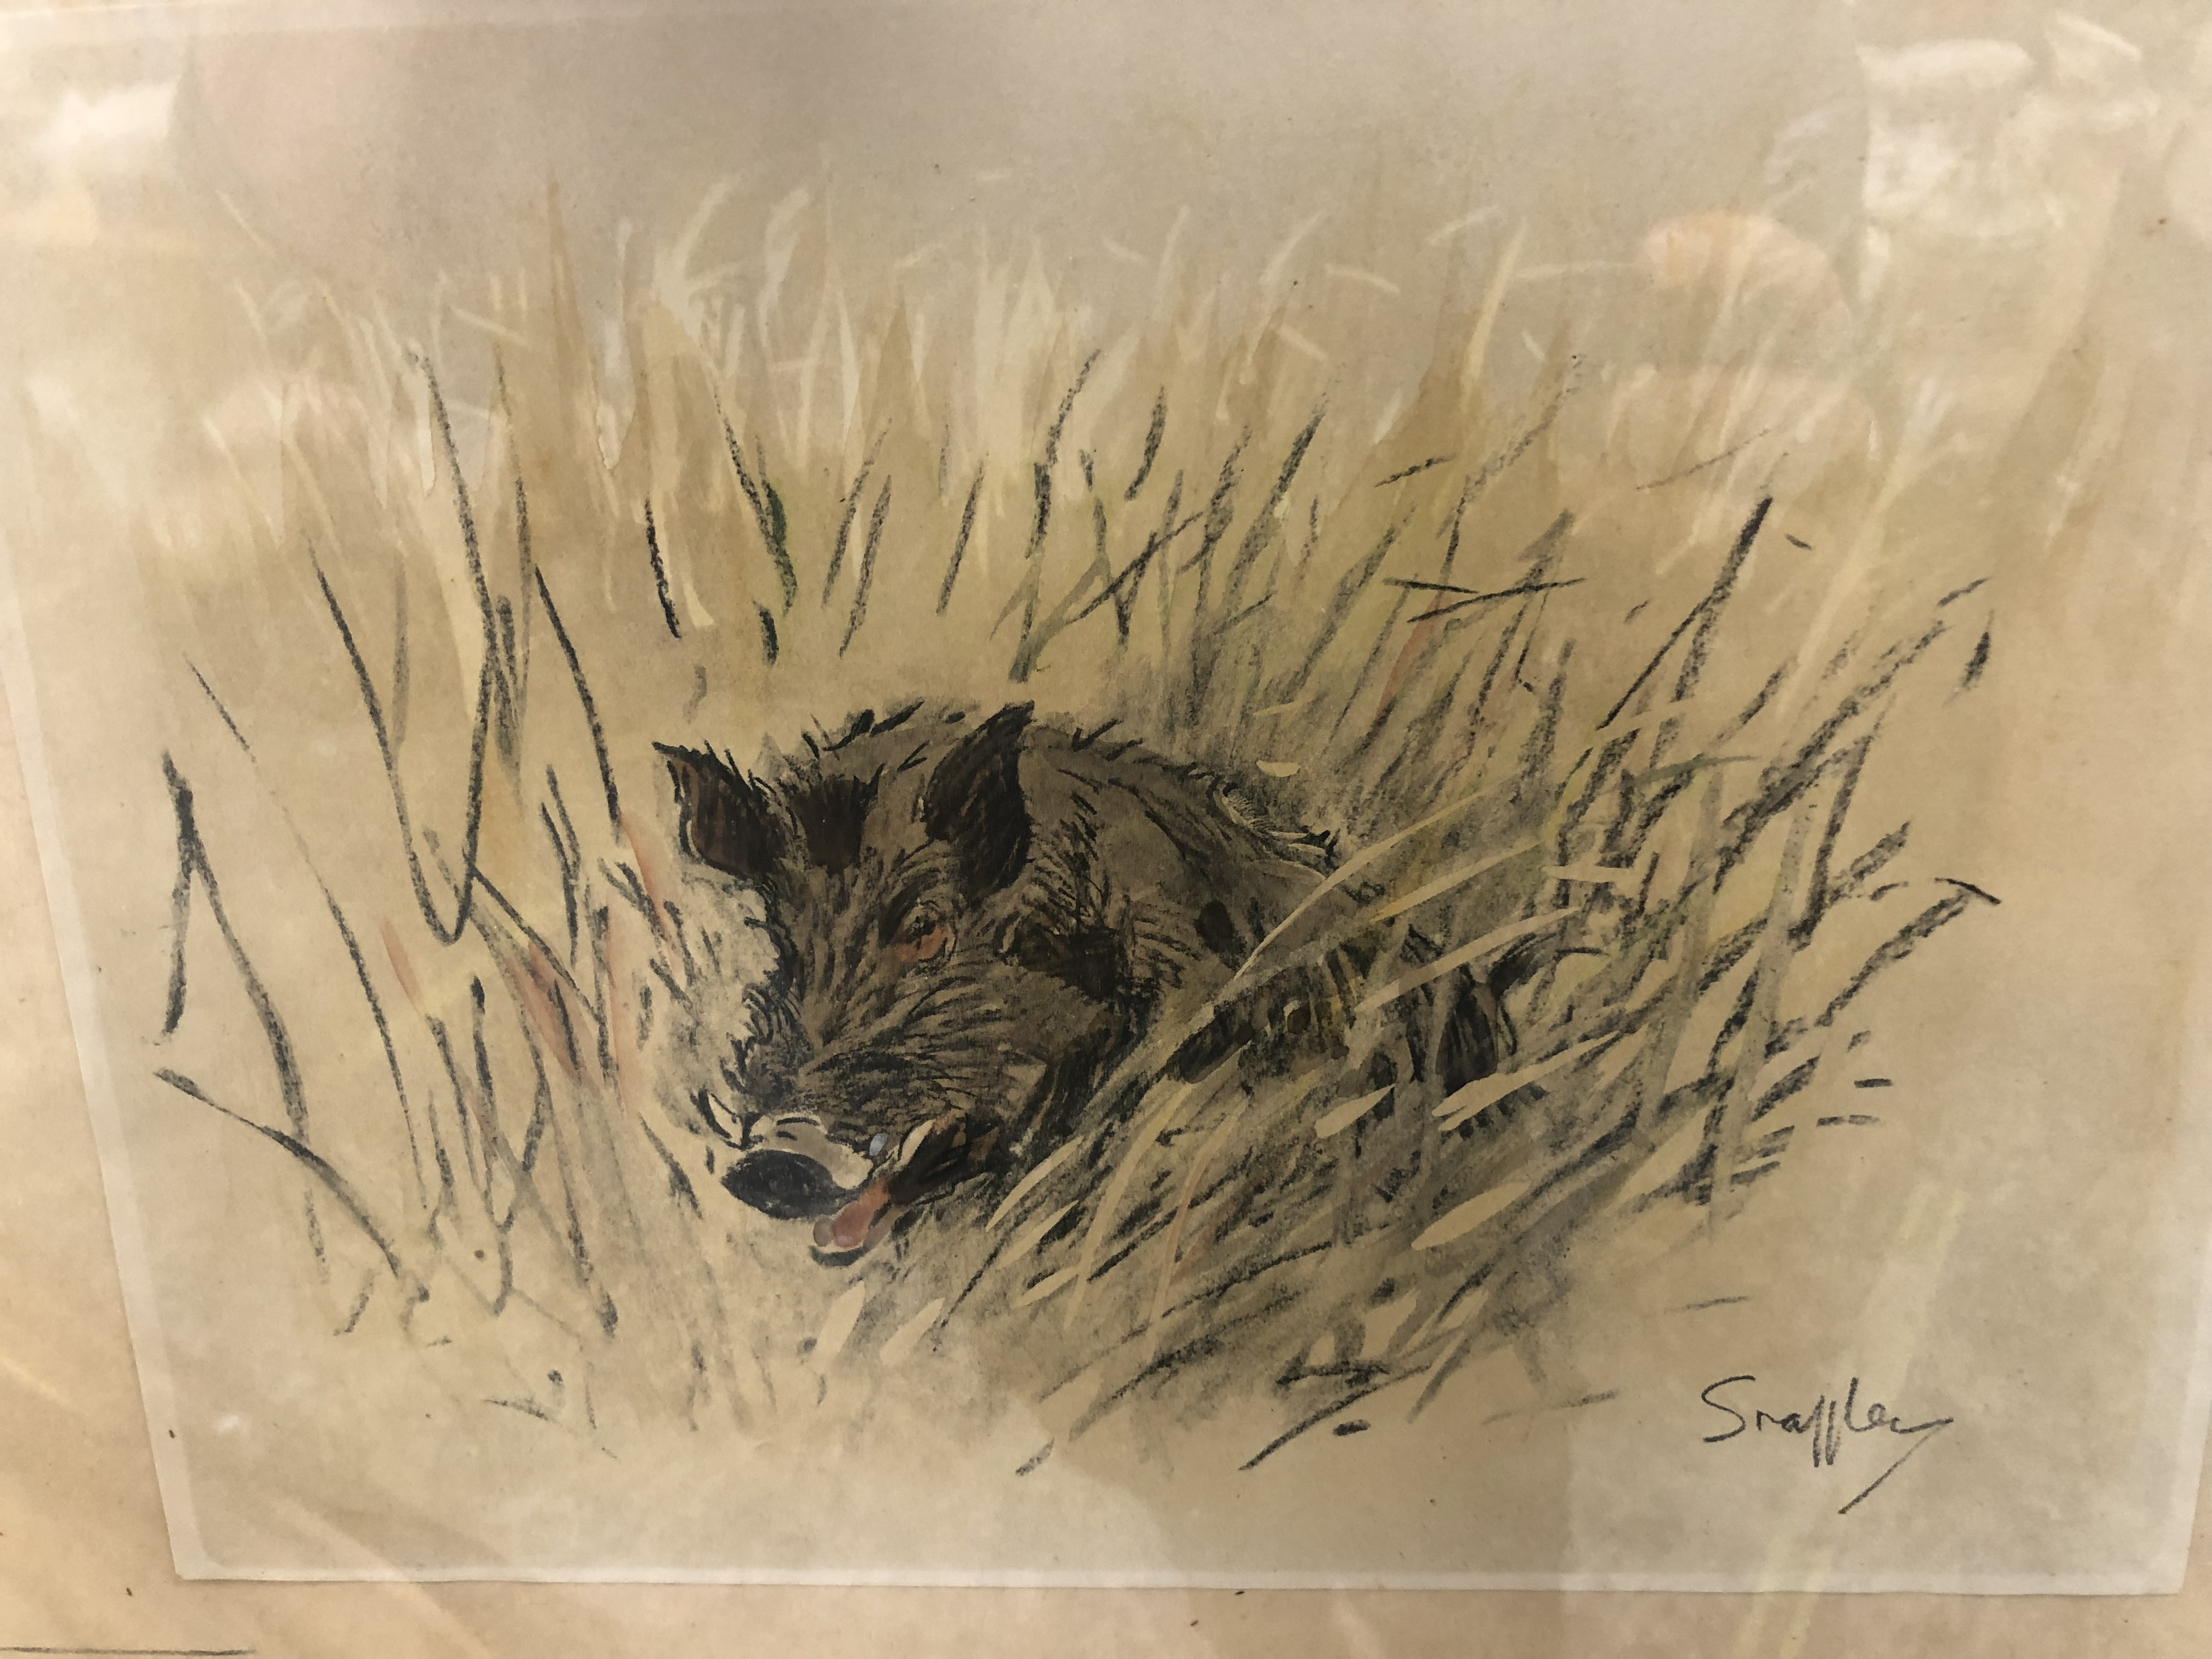 SNAFFLES, CHARLES JOHNSON PAYNE (1884-1967) A PENCIL SIGNED COLOUR PRINT OF A WILD BOAR. 43 x 51cms - Image 7 of 7